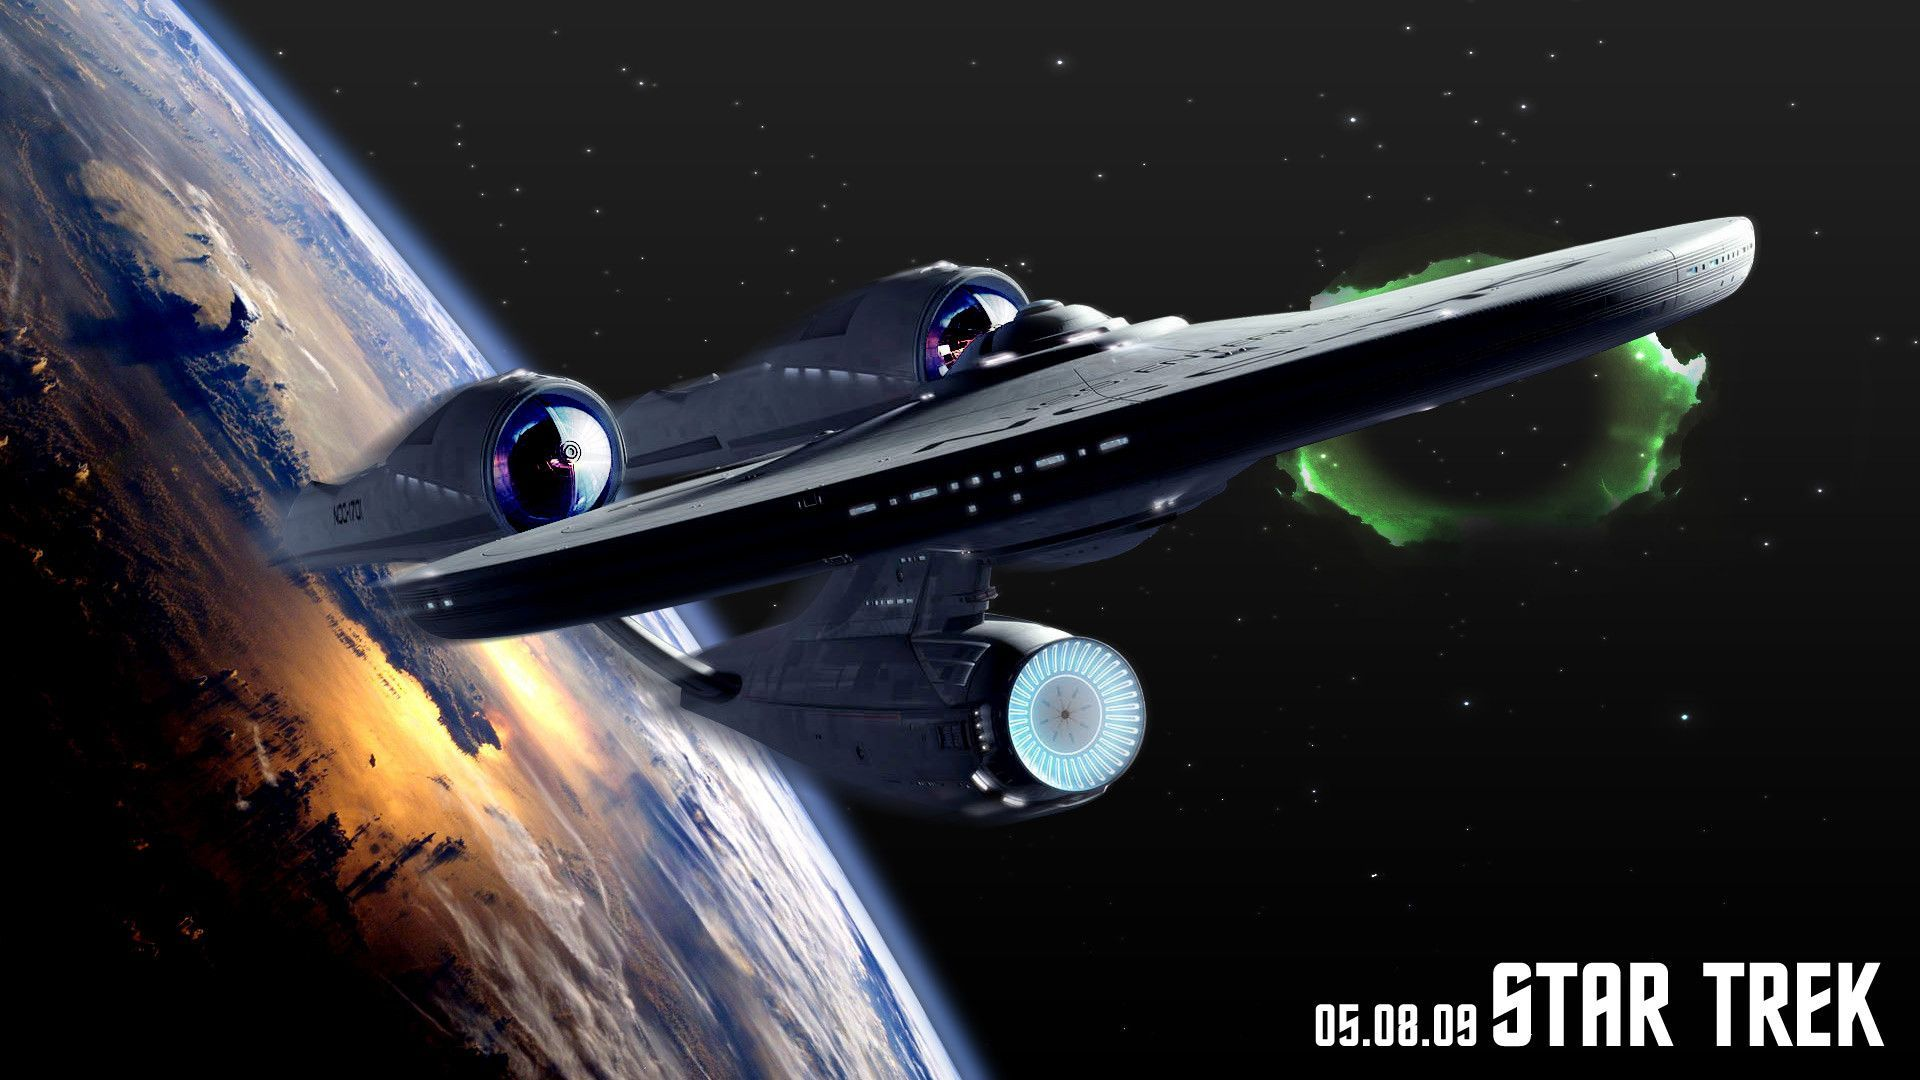 Cool Star Trek Wallpaper